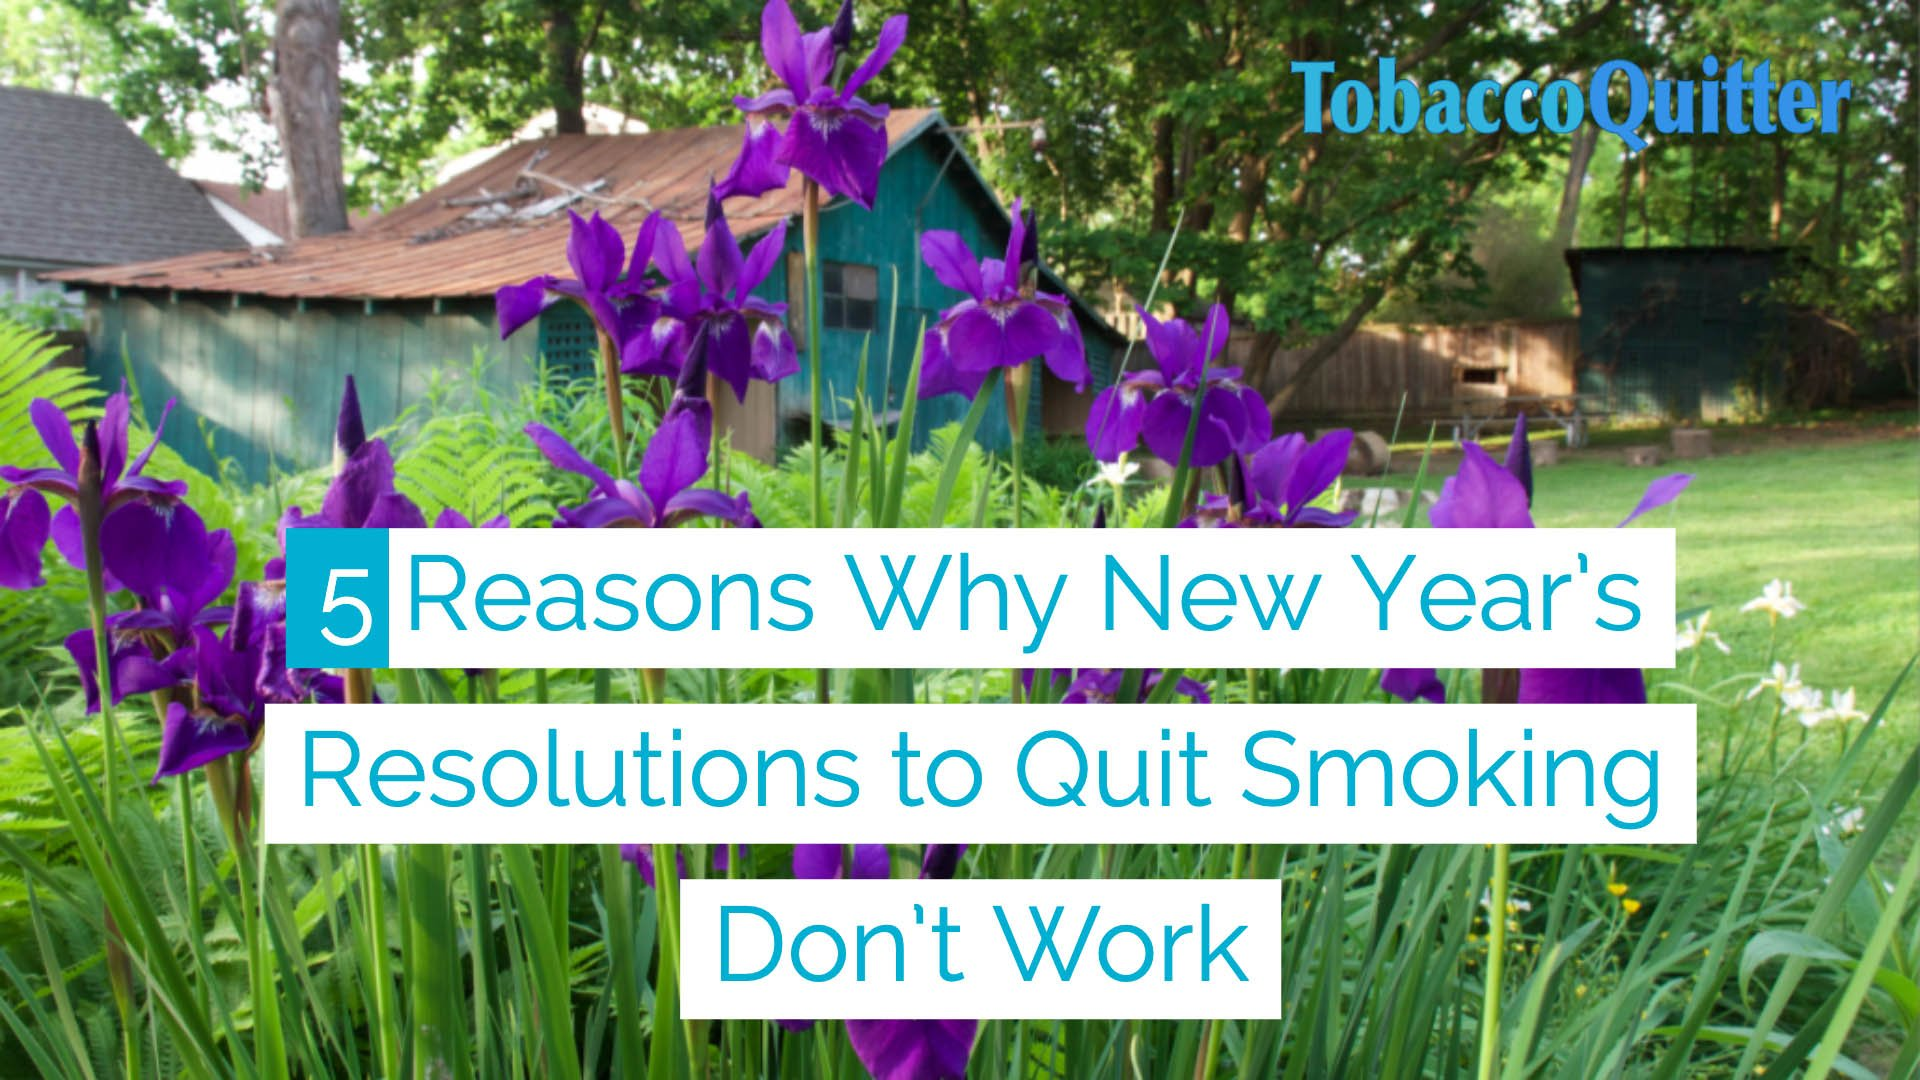 5 Reasons Why New Year's Resolutions to Quit smoking don't work.